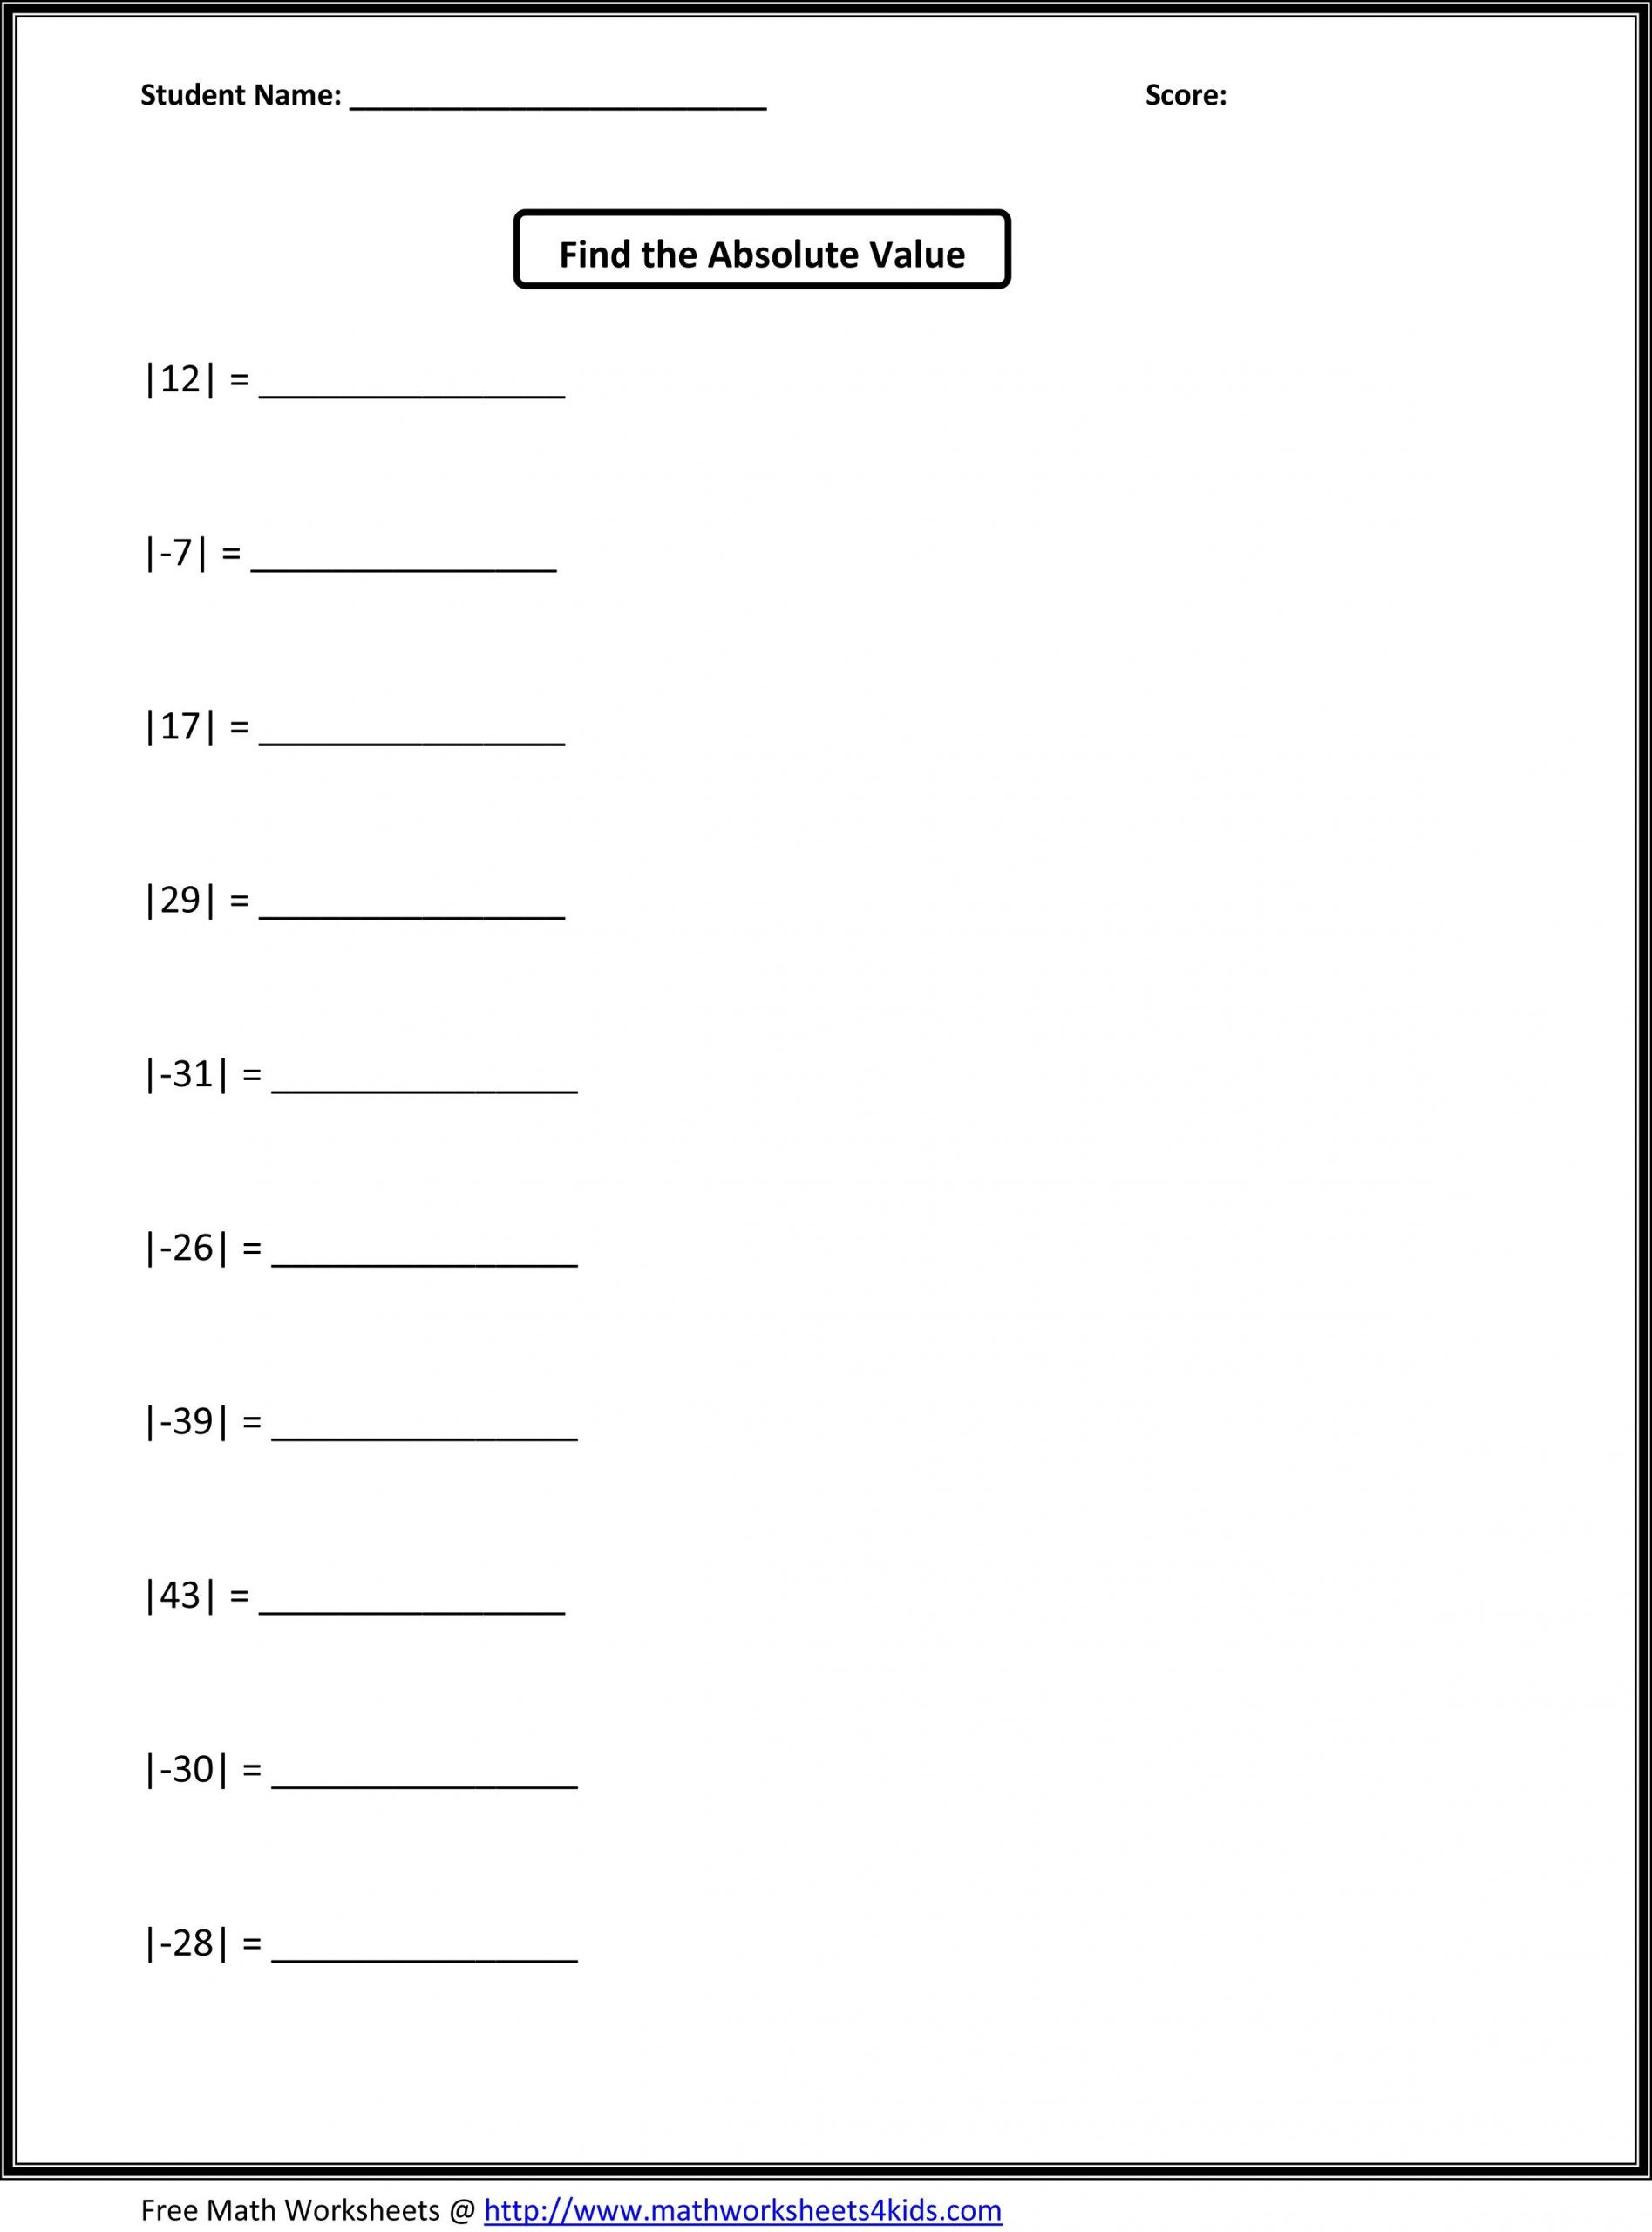 Line Graph Worksheets 5th Grade Math Quiz for Grade 2 Ch Sh Th Worksheets Kindergarten Free